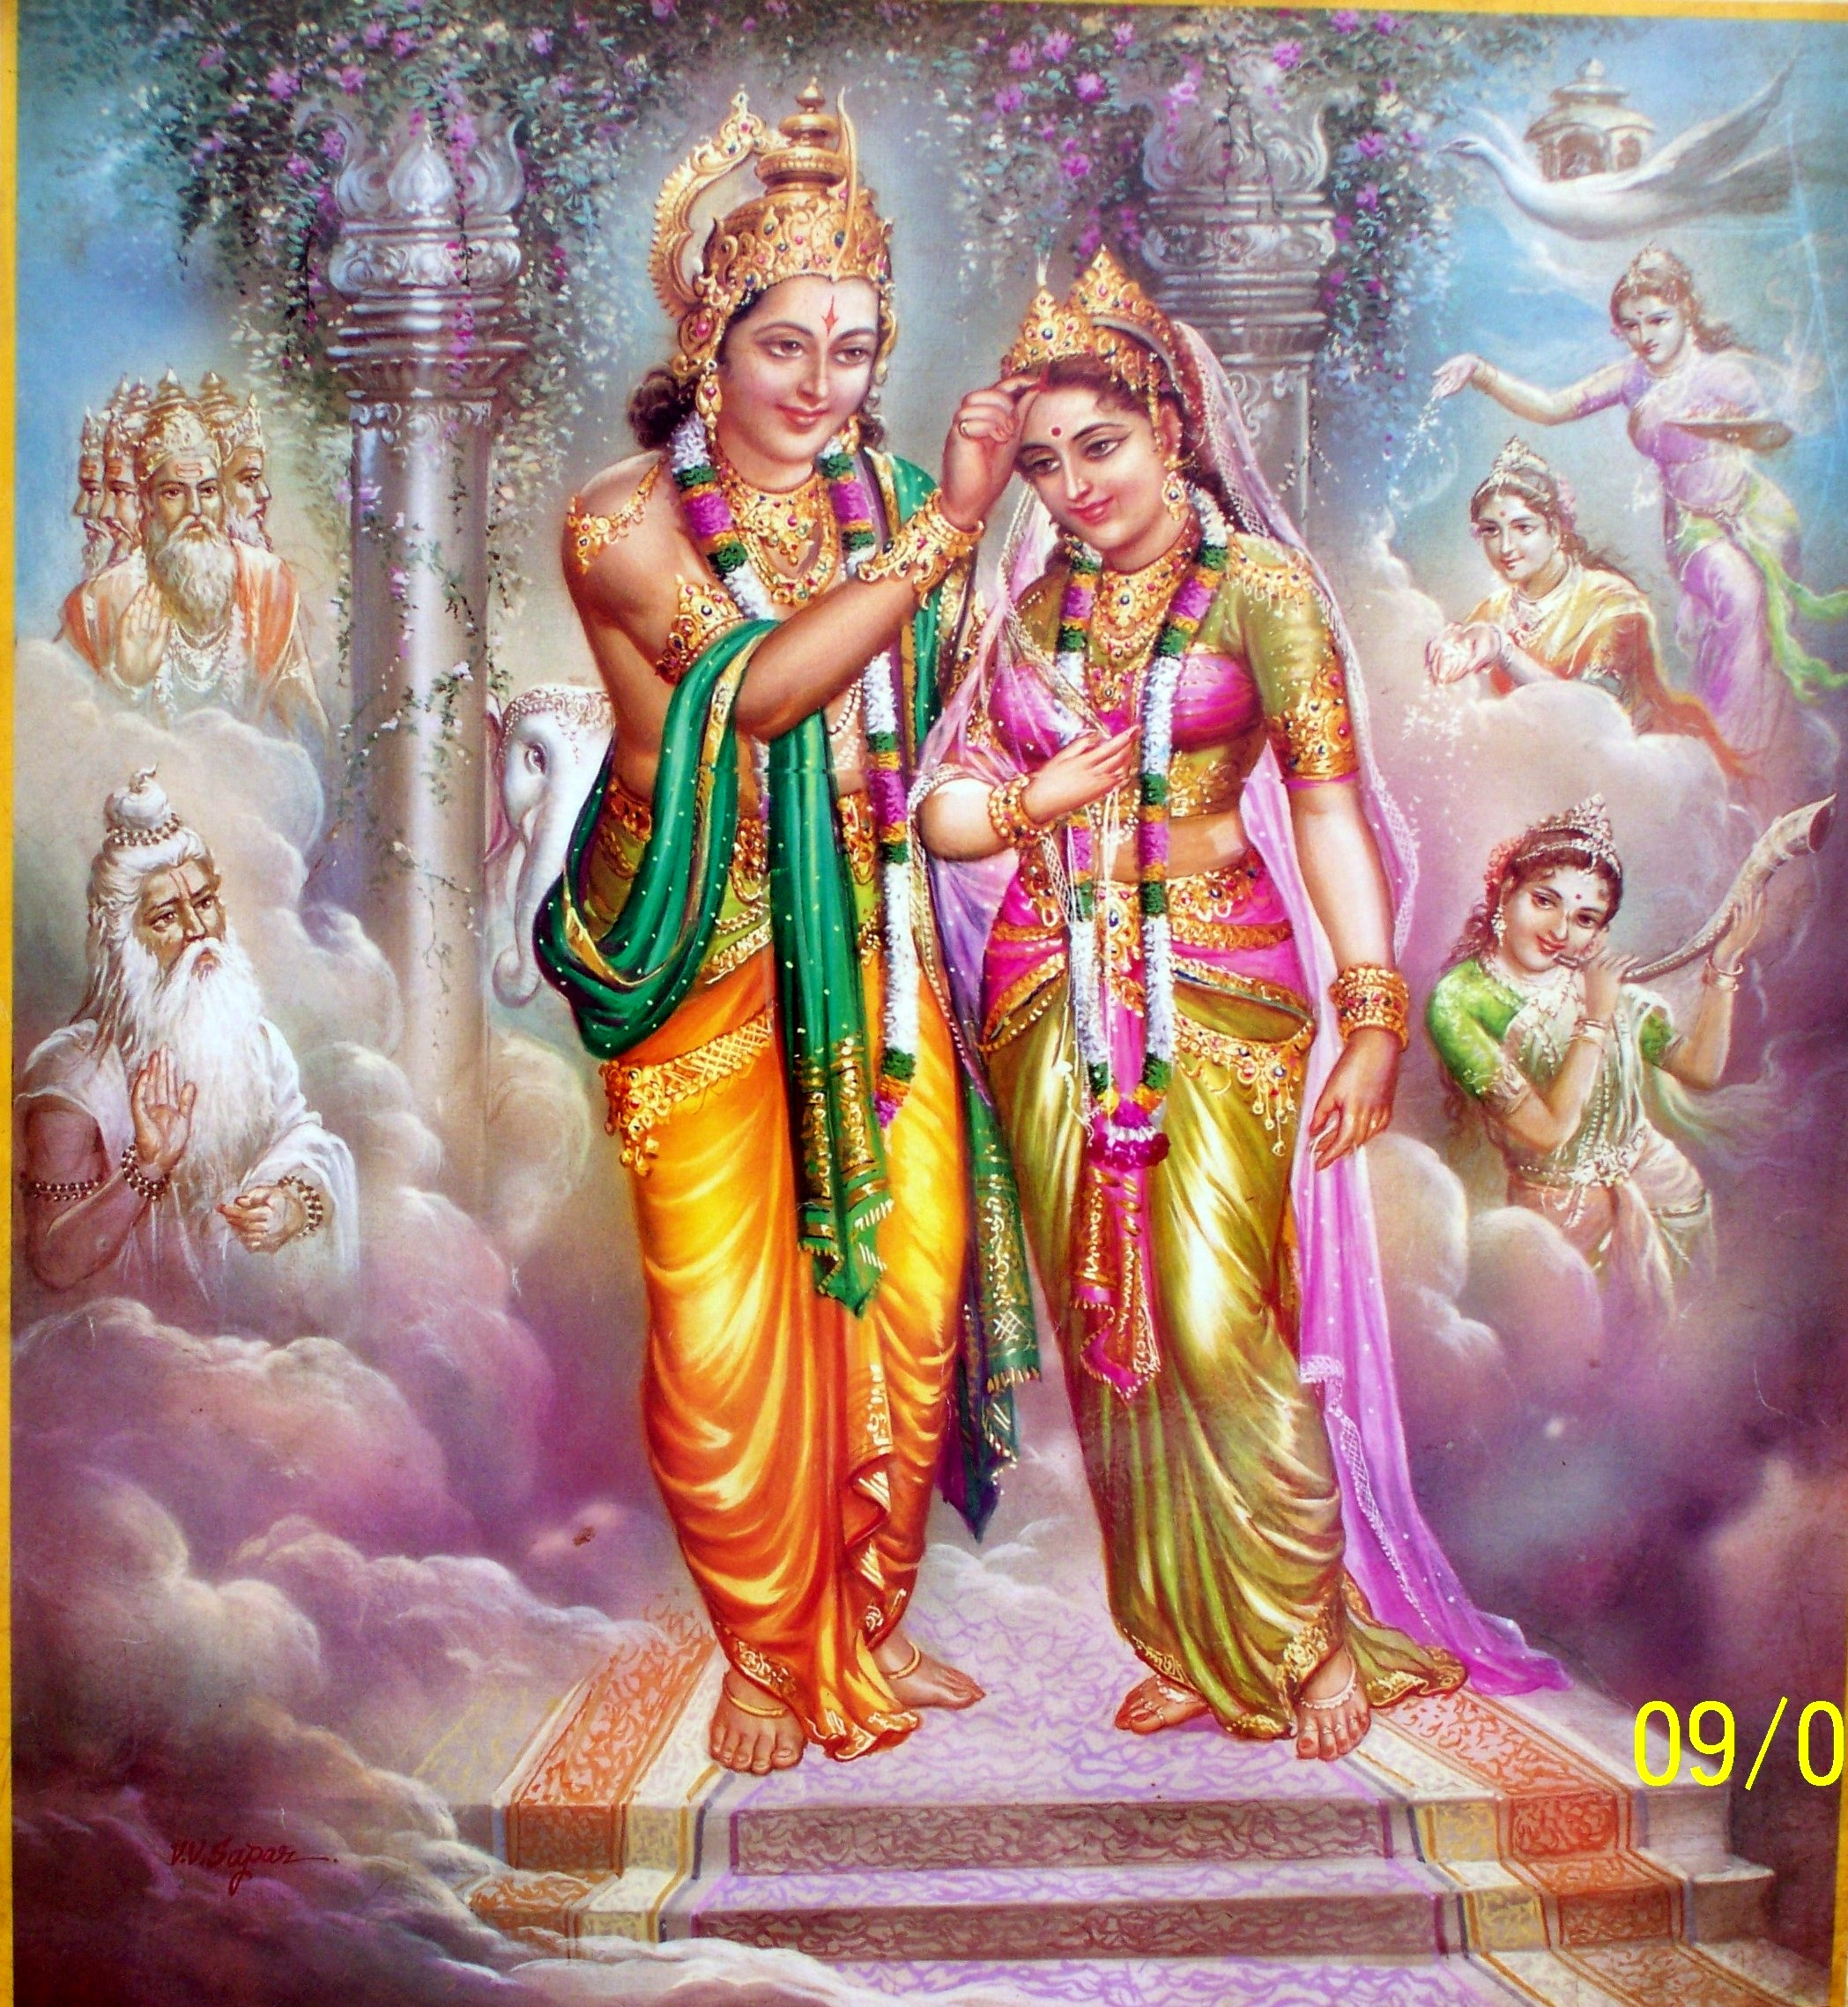 Shiv Parvati Vivah Hd Wallpaper June 171 2012 171 Srimadhvyasa